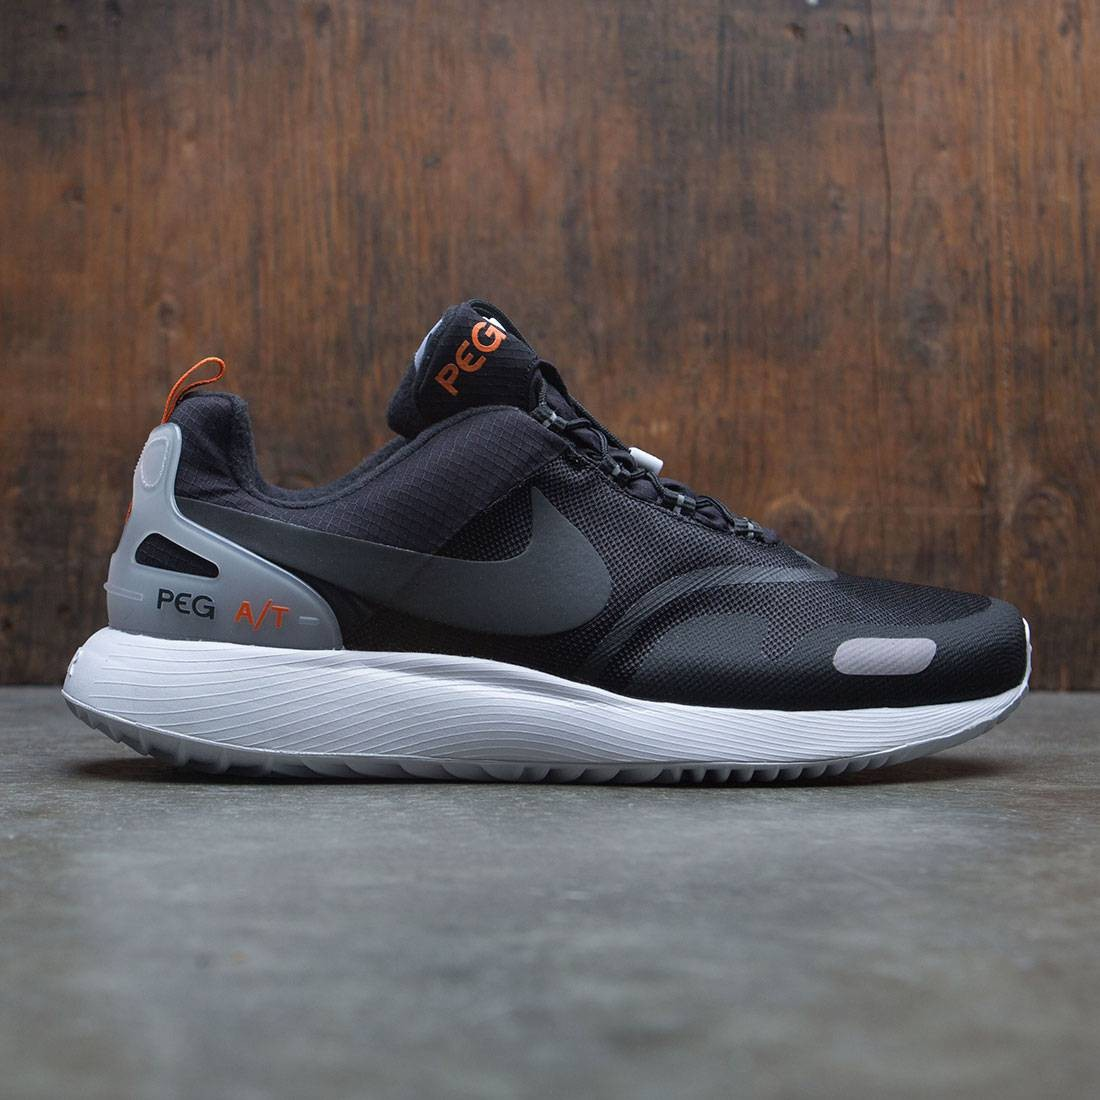 nike men air pegasus a t pinnacle black black white safety orange 14fe197347c6